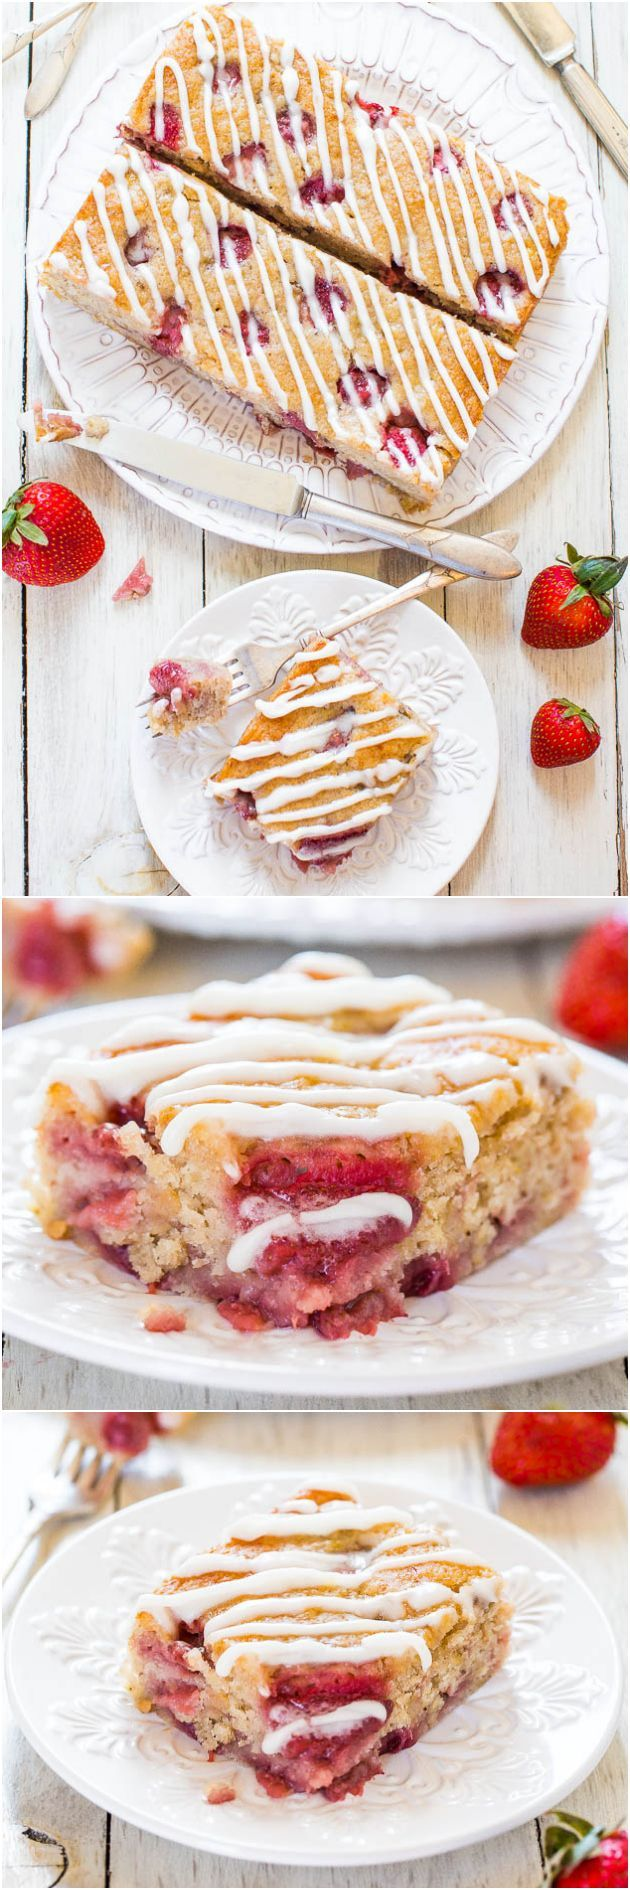 Soft & Fluffy Strawberry Banana Cake (vegan): You'll never miss the eggs or butter in this soft, healthier cake bursting with berries!